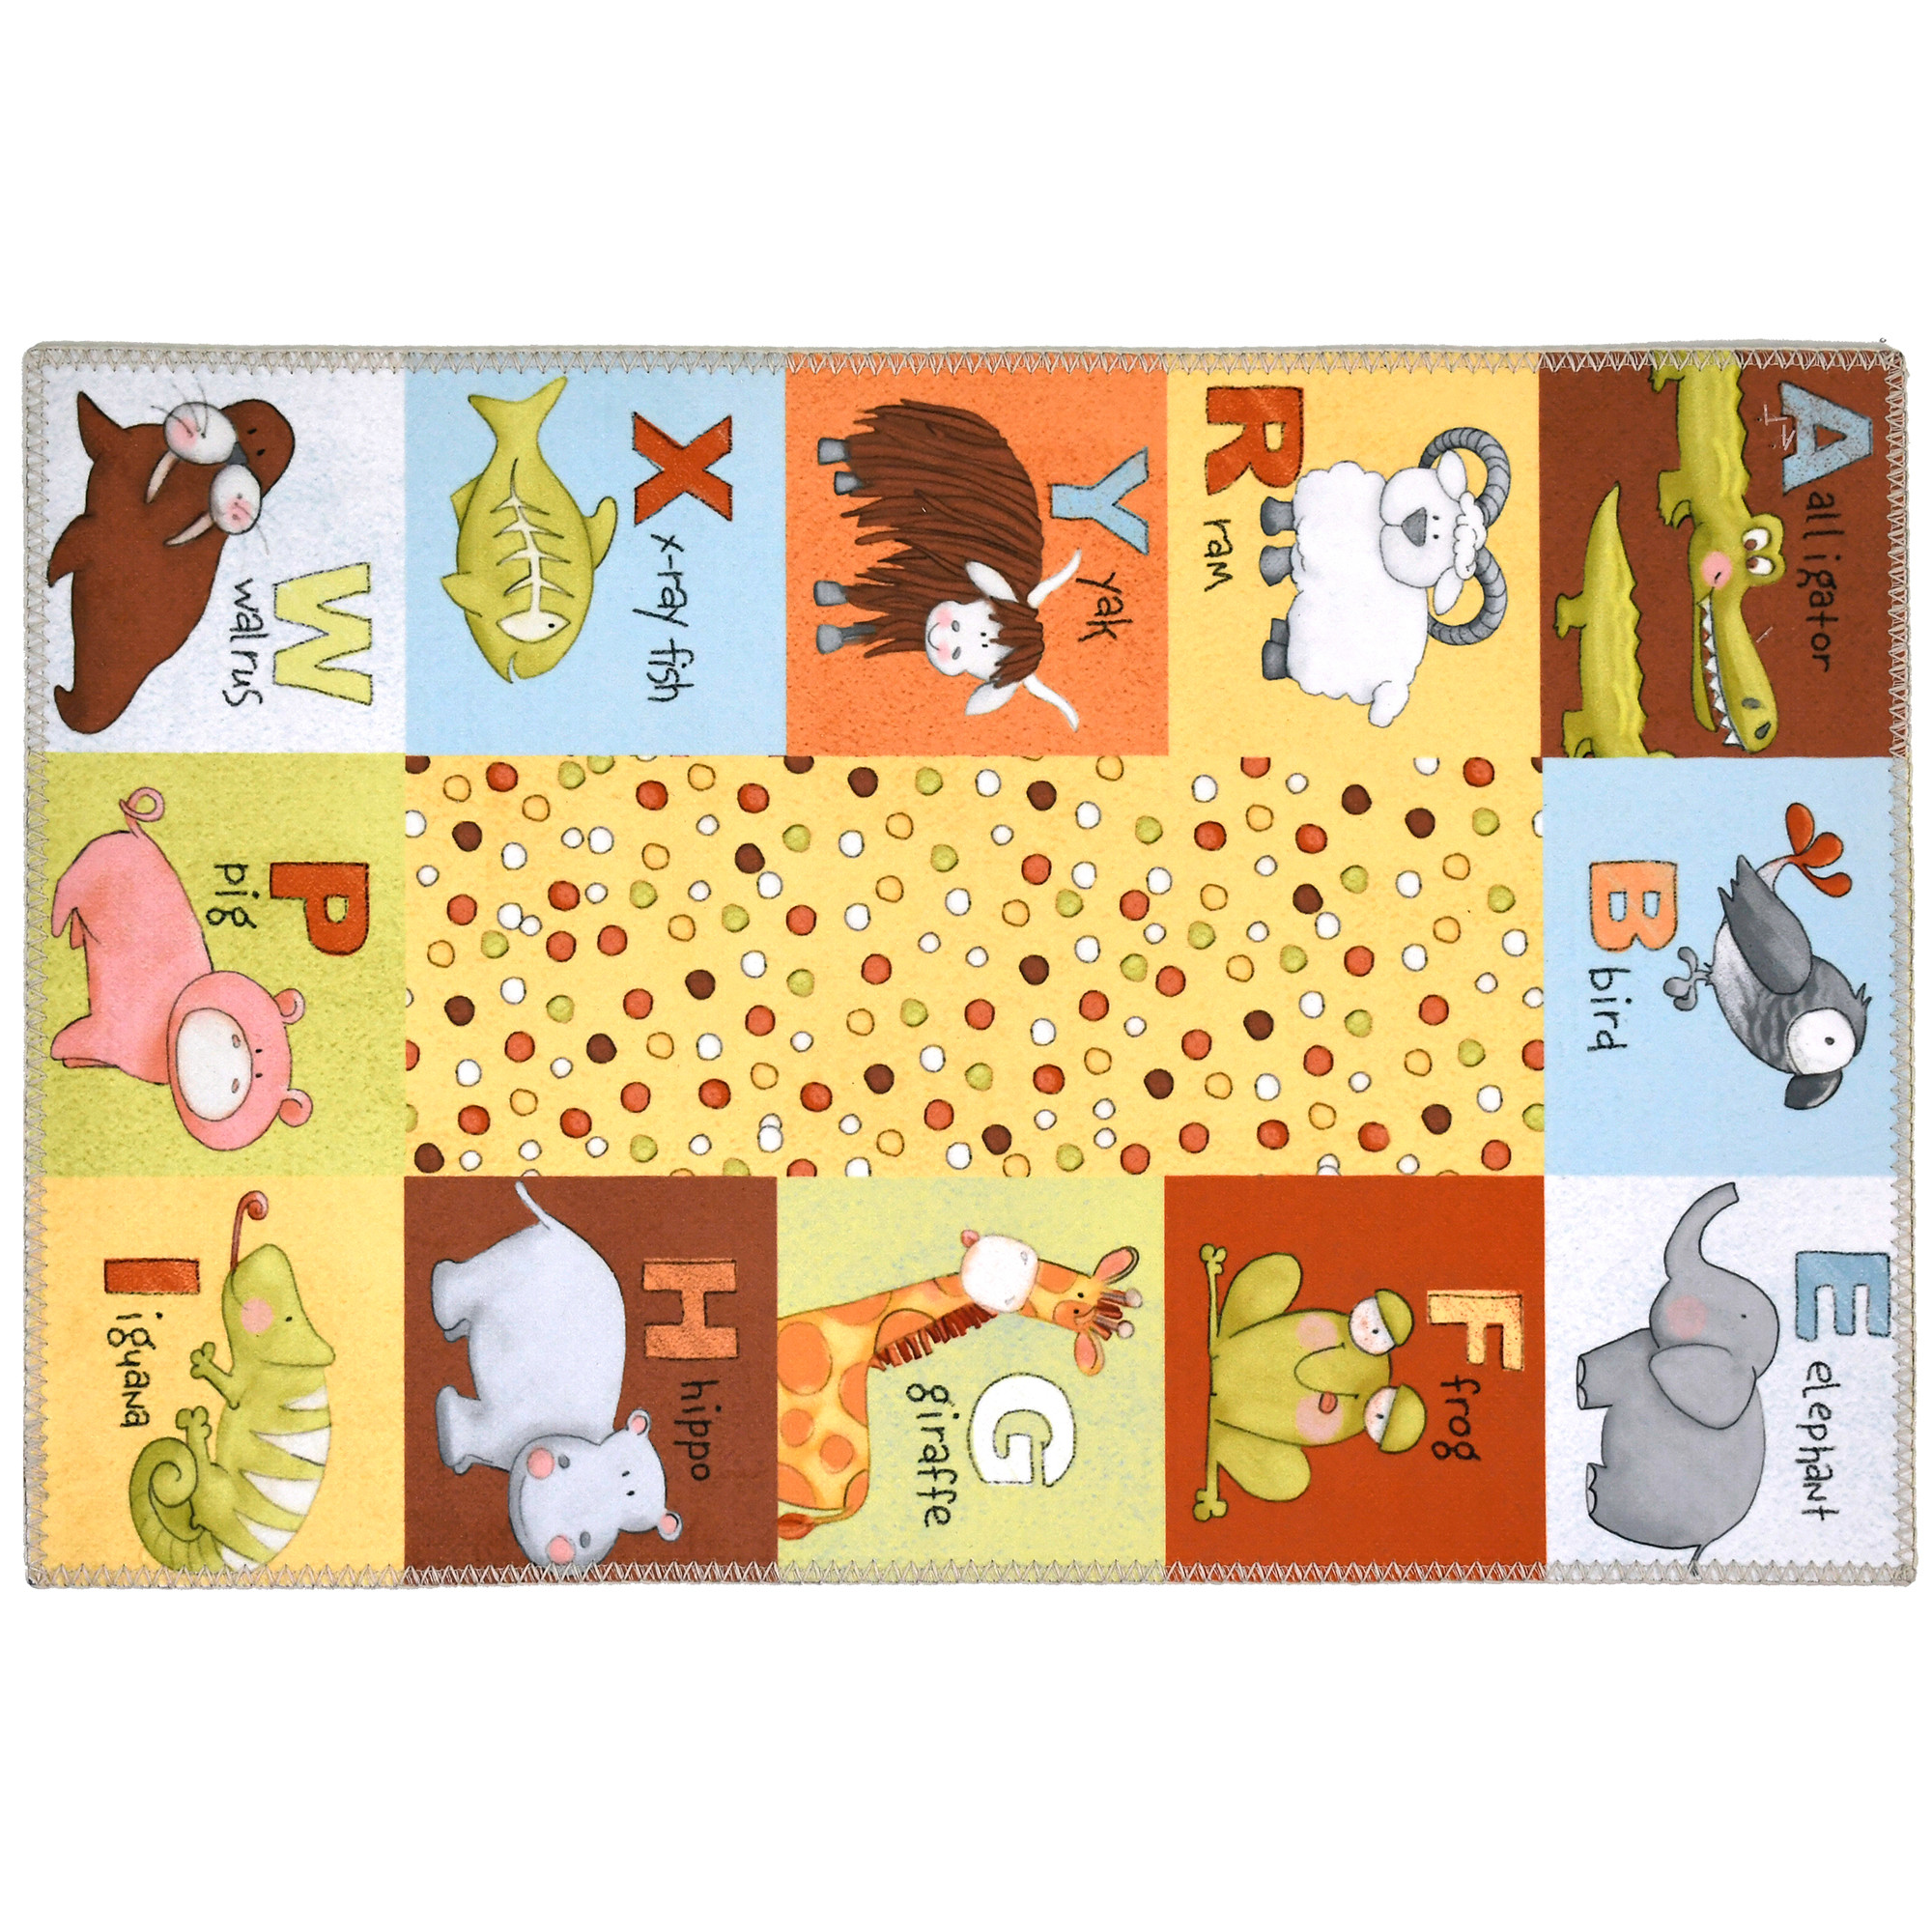 Bright colors with dots, animals, and the alphabet complete this Homefires by Jellybean® poly-suede floor cloth. Machine washable printed polyester make this design by Julie Dobson Minor a favorite for children's rooms and spaces. This floor cloth is thin enough to use under furniture pieces and available in four sizes.